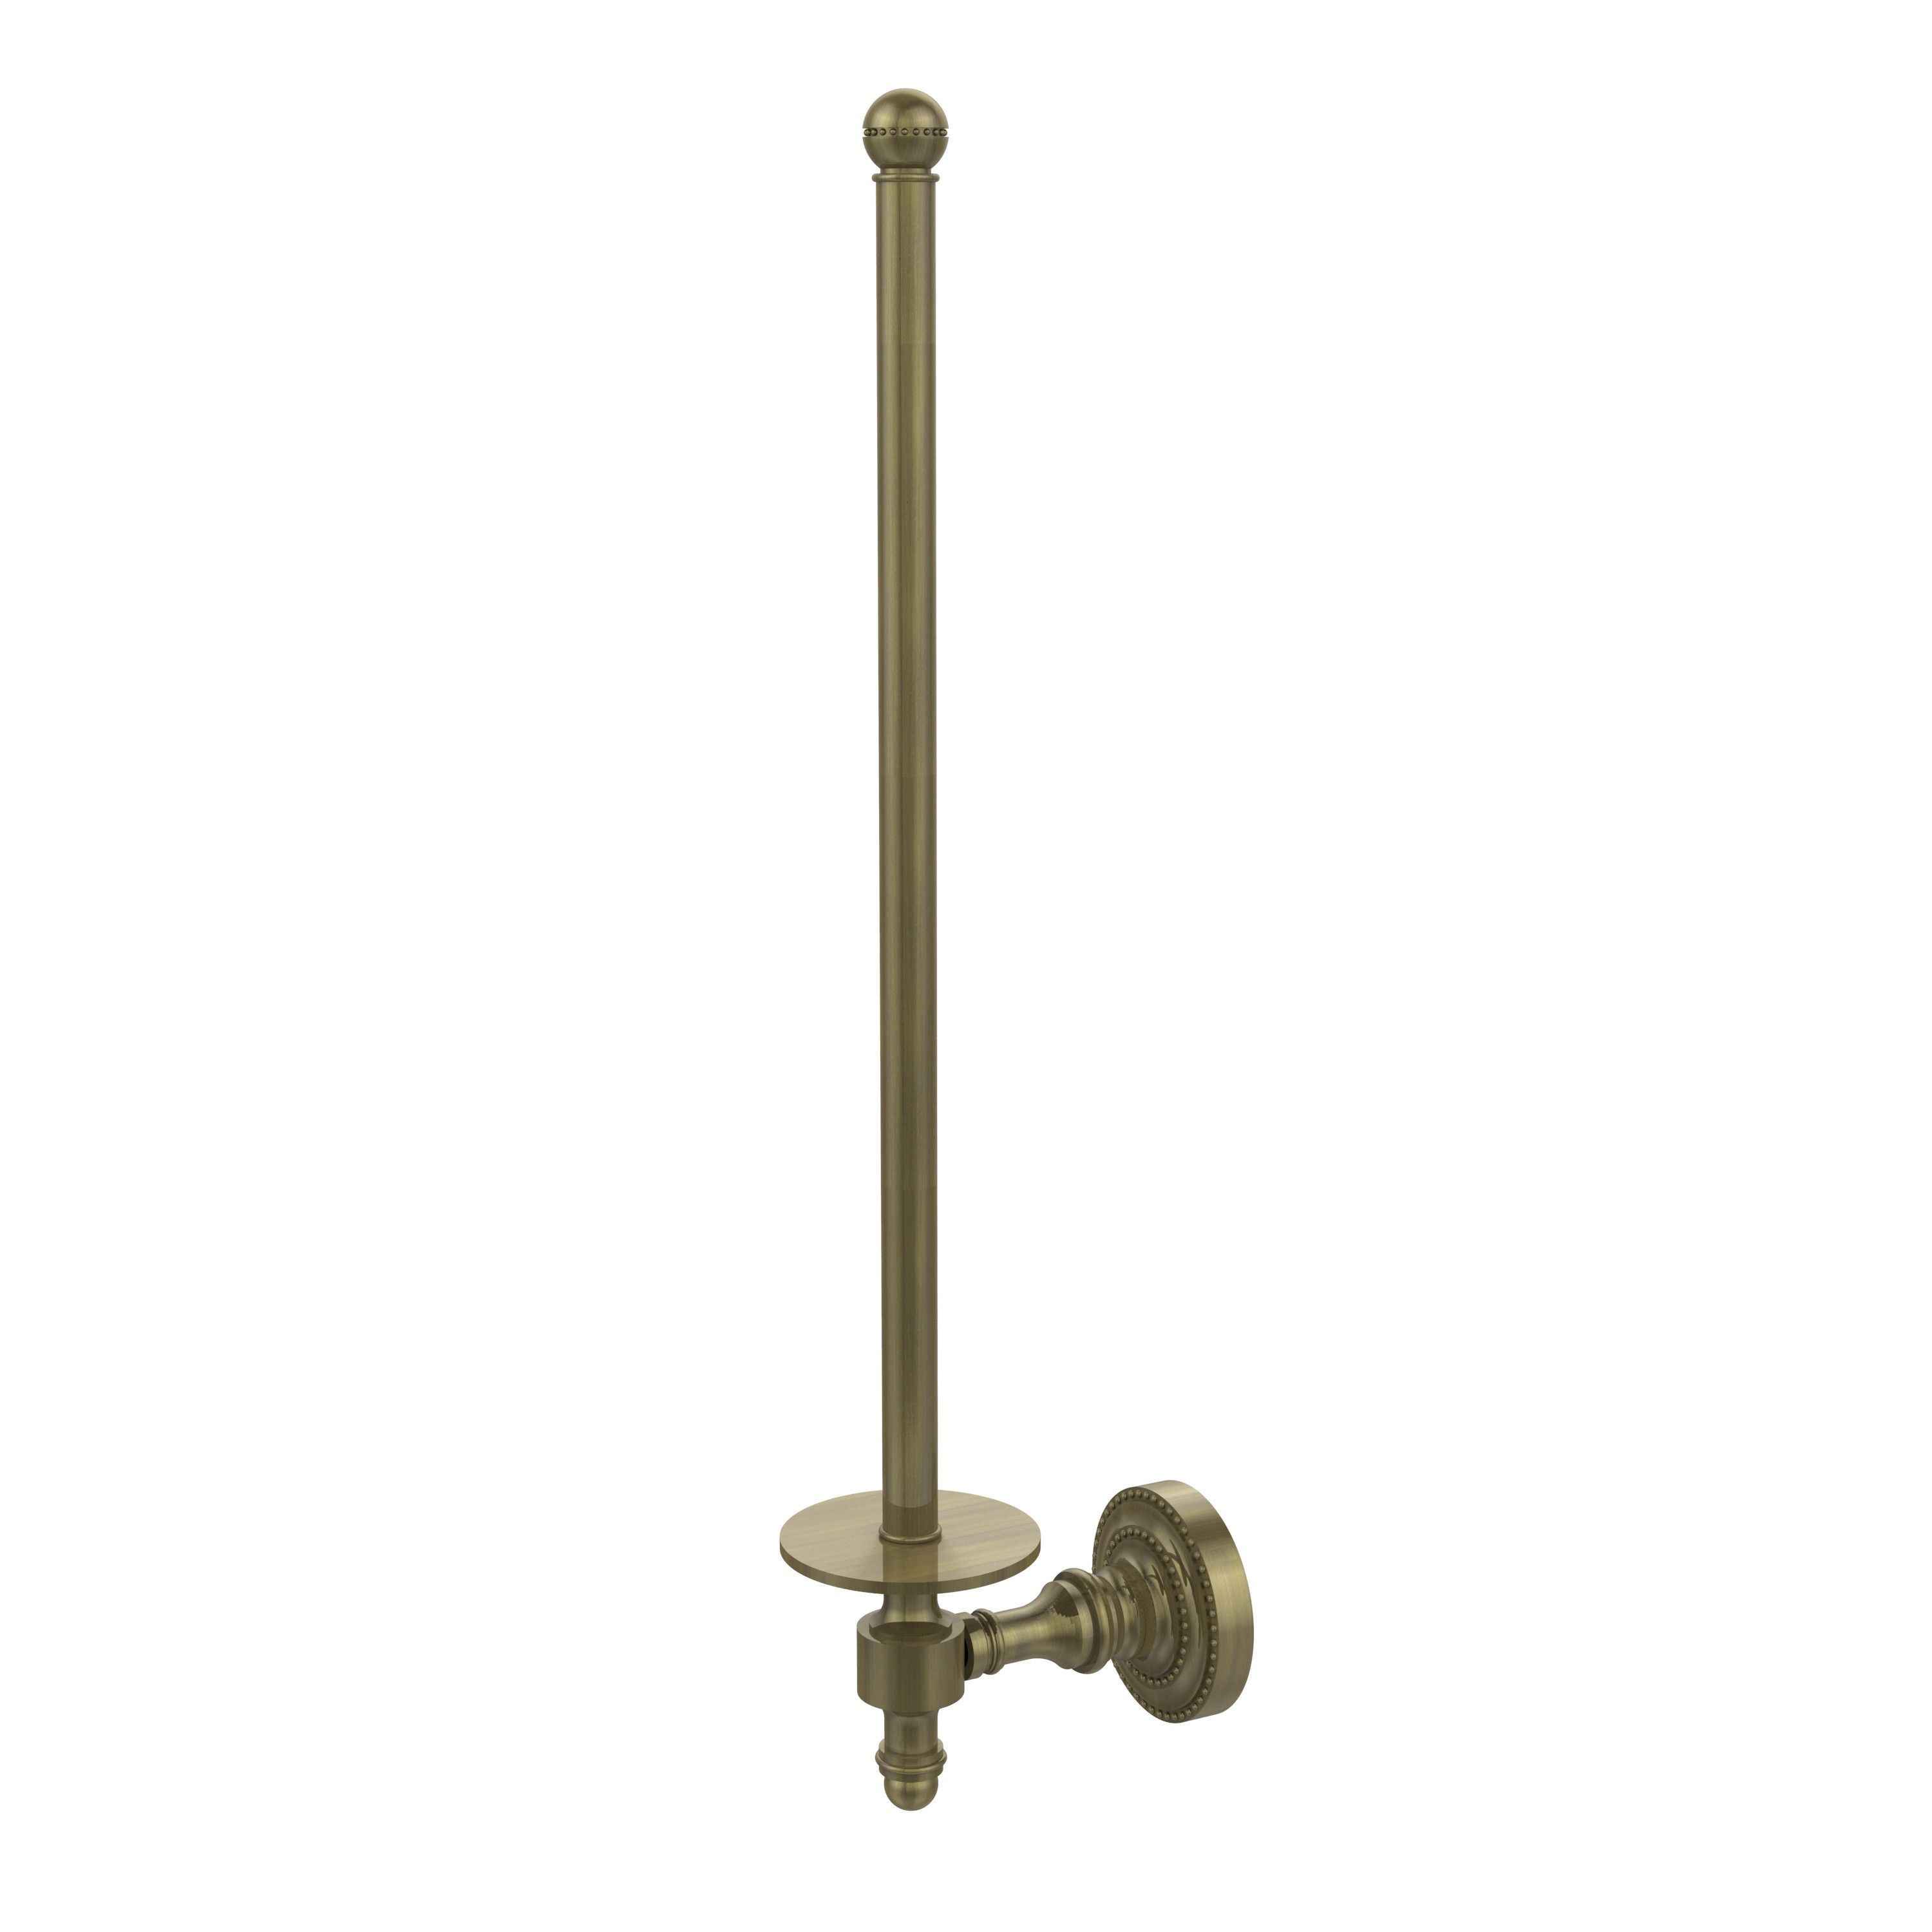 Easy To Fill And Refill With Wall Mounted Paper Towel Holder Vertical Wall Mount Paper Towel Holder Wall Mounted Paper Towel Holder Bronze Wall Mount Paper